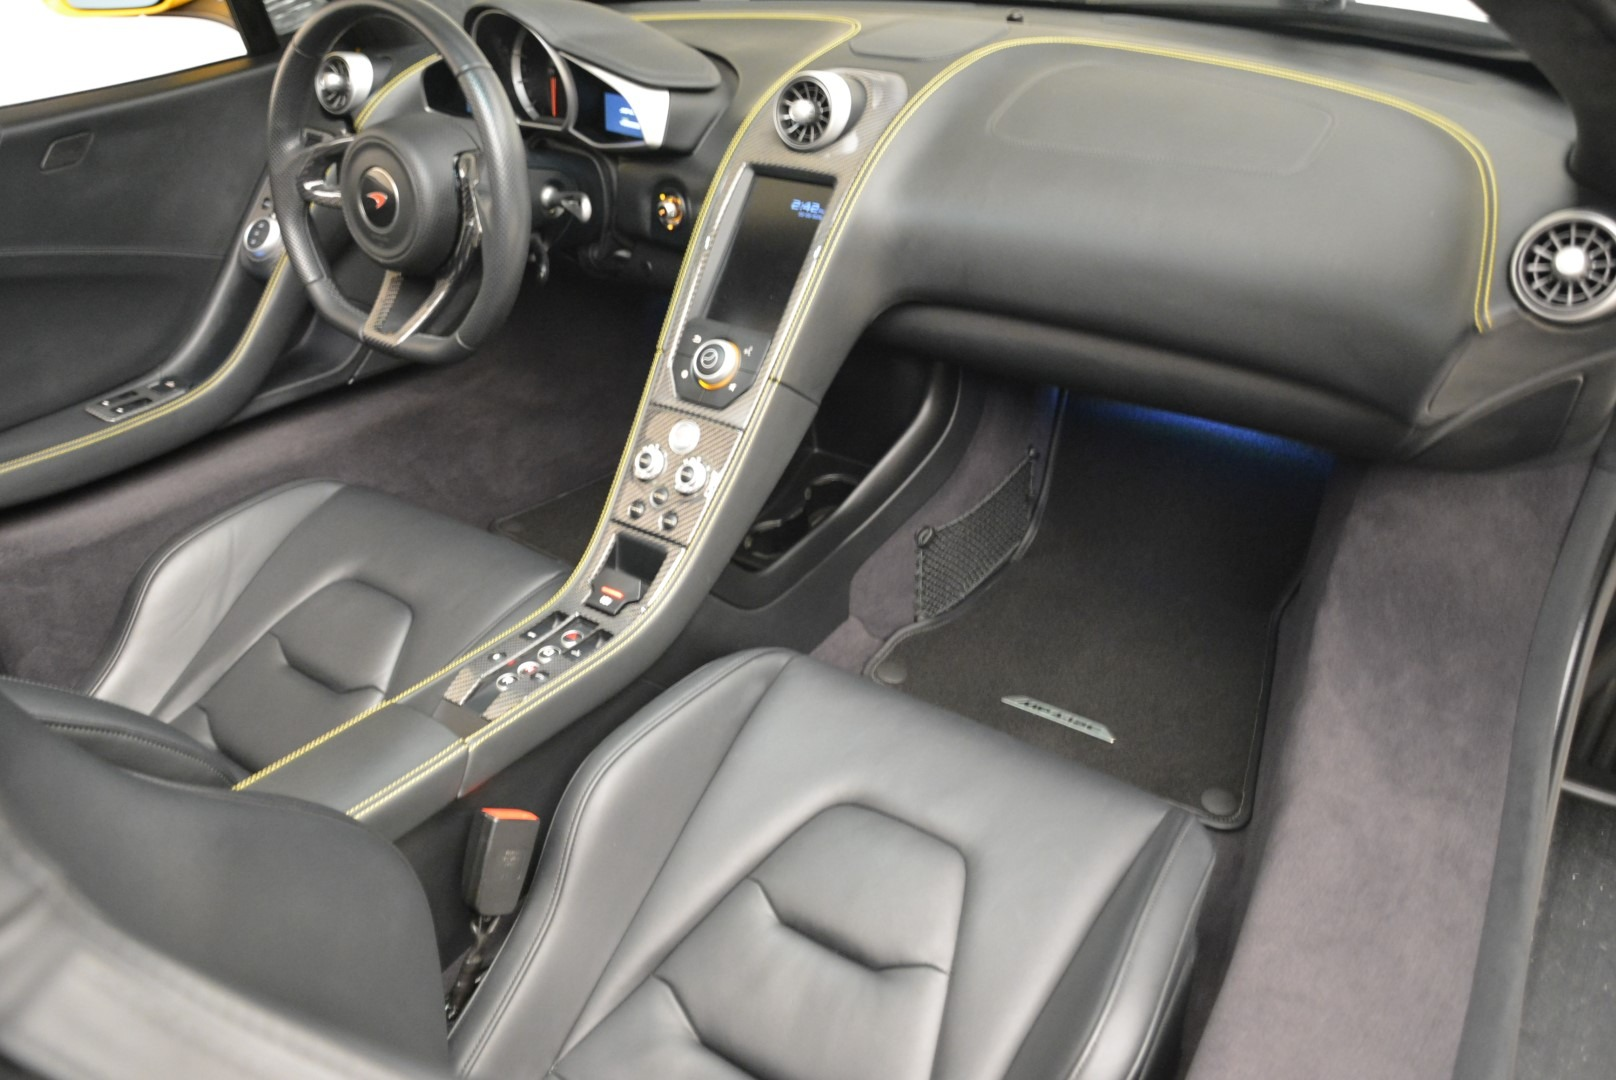 Used 2014 McLaren MP4-12C Spider For Sale In Greenwich, CT 2057_p29